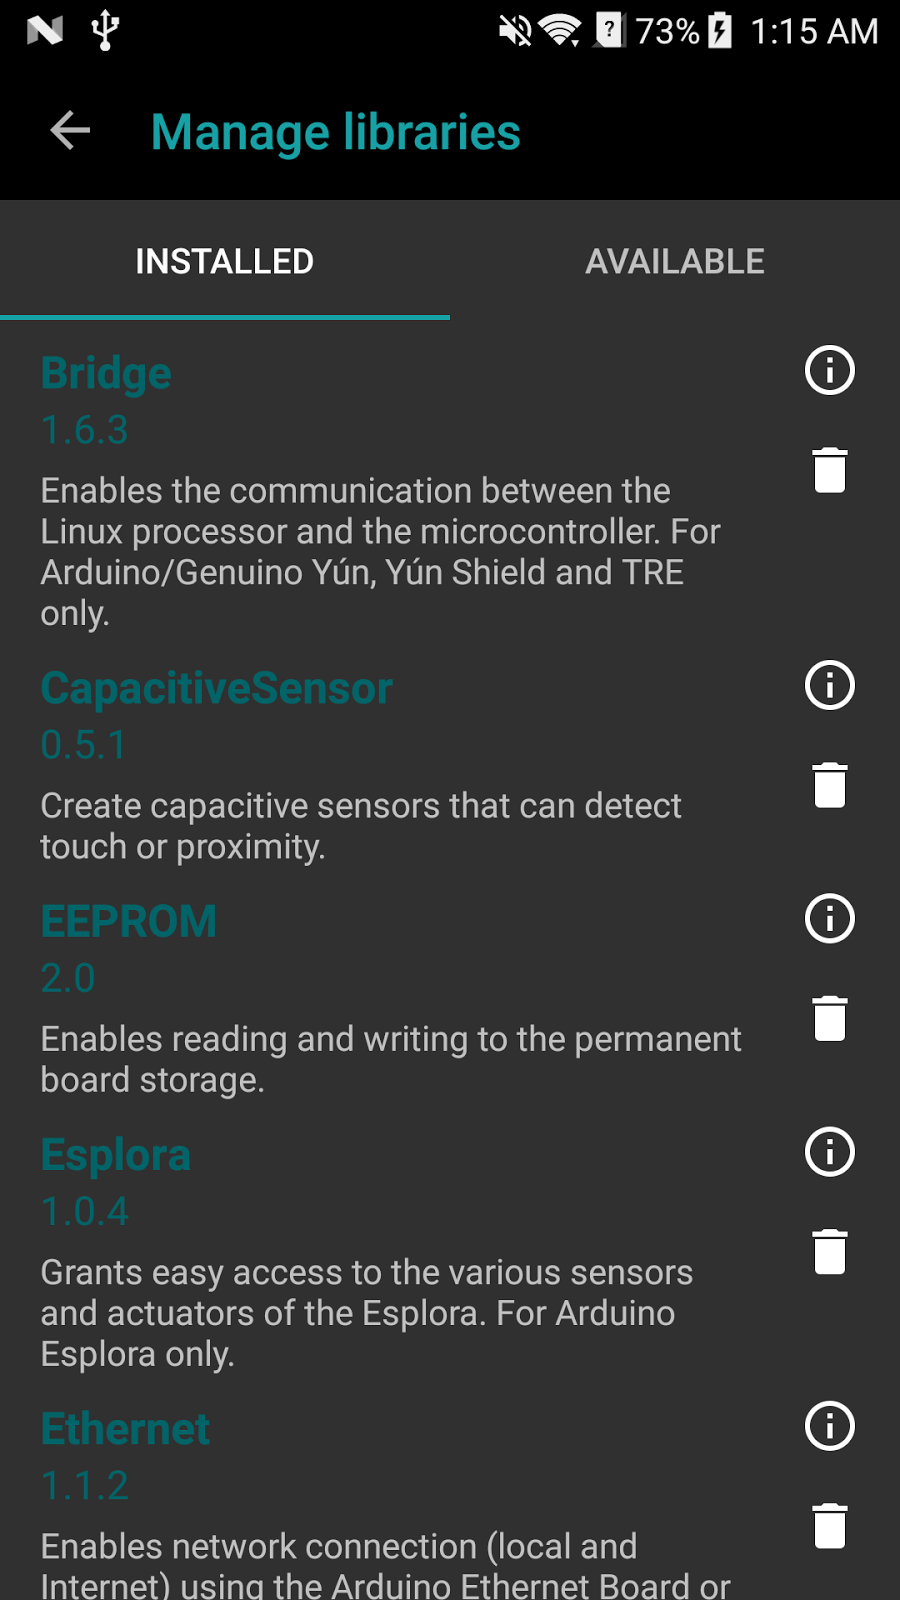 Library Manager | ArduinoDroid - Arduino IDE for Android